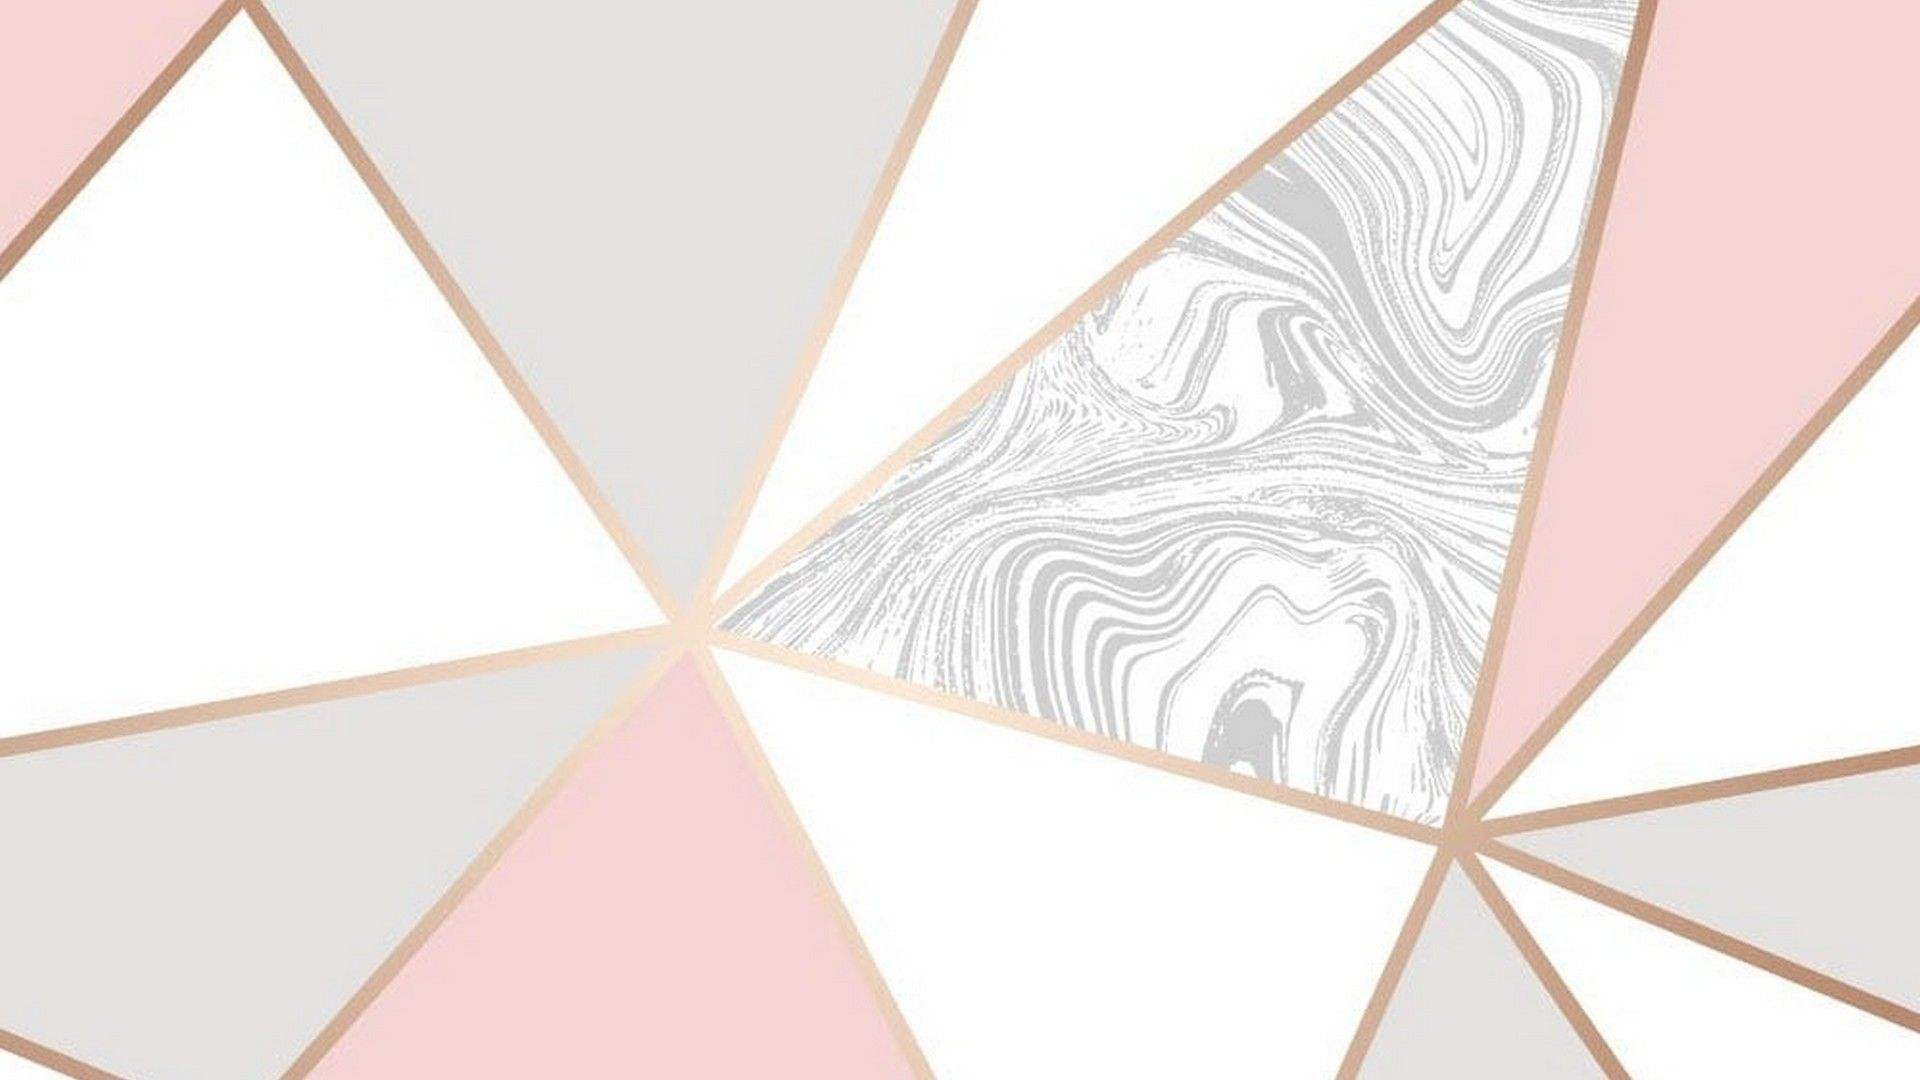 Wallpaper Rose Gold Marble Best Hd Wallpapers Rose Gold Wallpaper Gold Wallpaper Iphone Rose Gold Marble Wallpaper